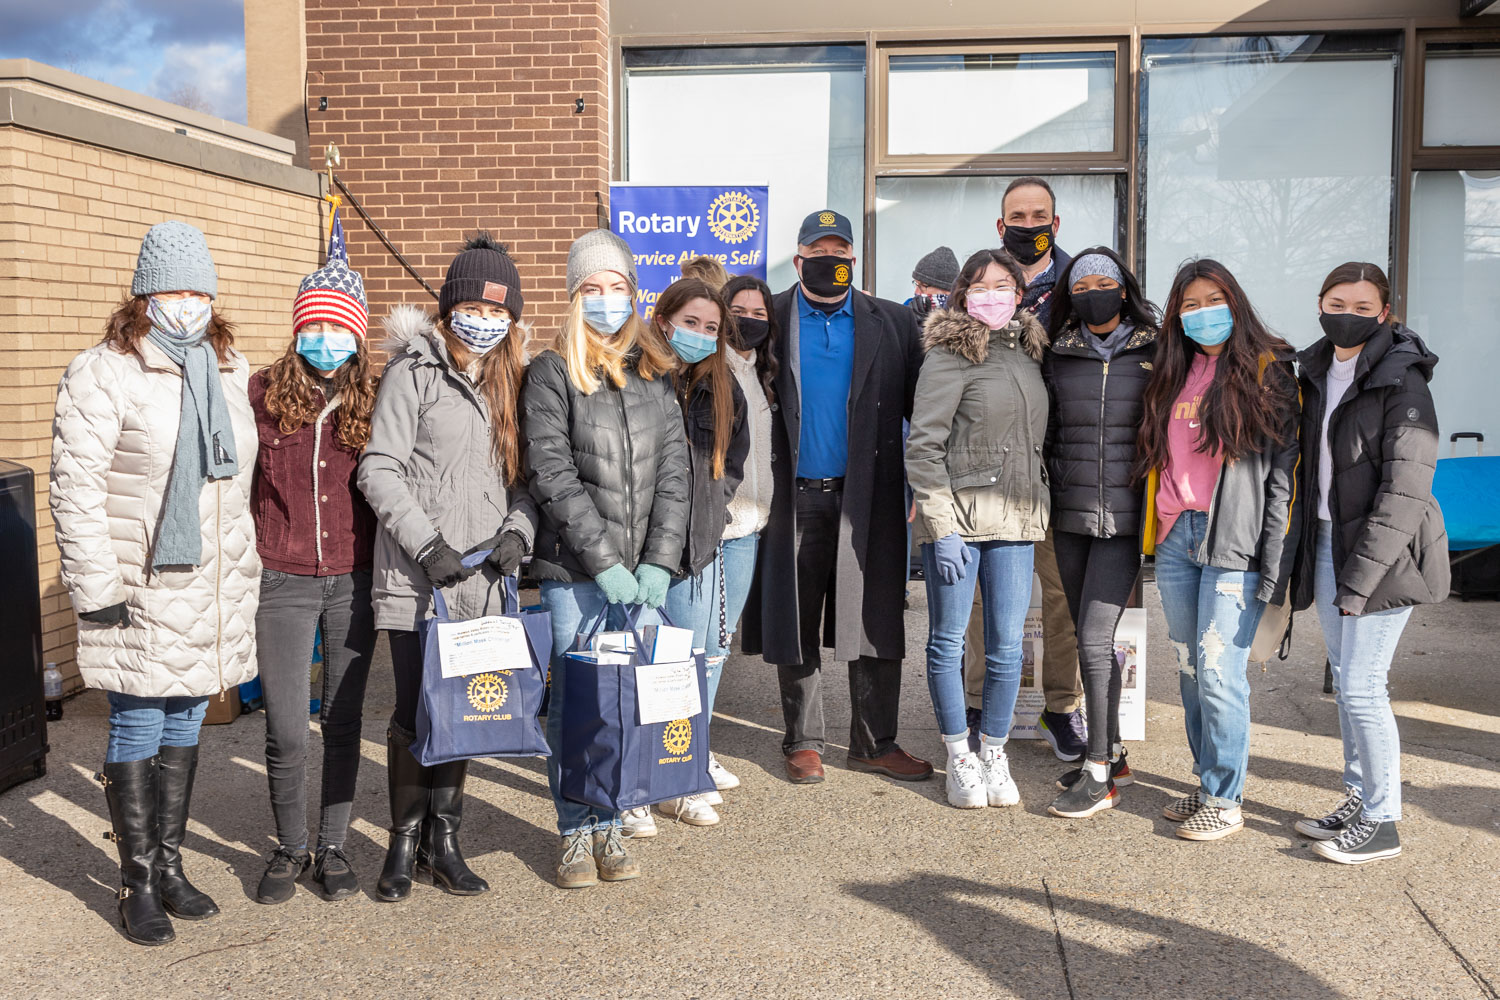 Members of the Warwick Valley High School's Interact Club volunteered to help distribute more than 7,000 masks with the Warwick Valley Rotary Club as part of the Rotary's Million Mask Challenge Tour on Jan. 23, at St. Anthony Community Hospital in Warwick.